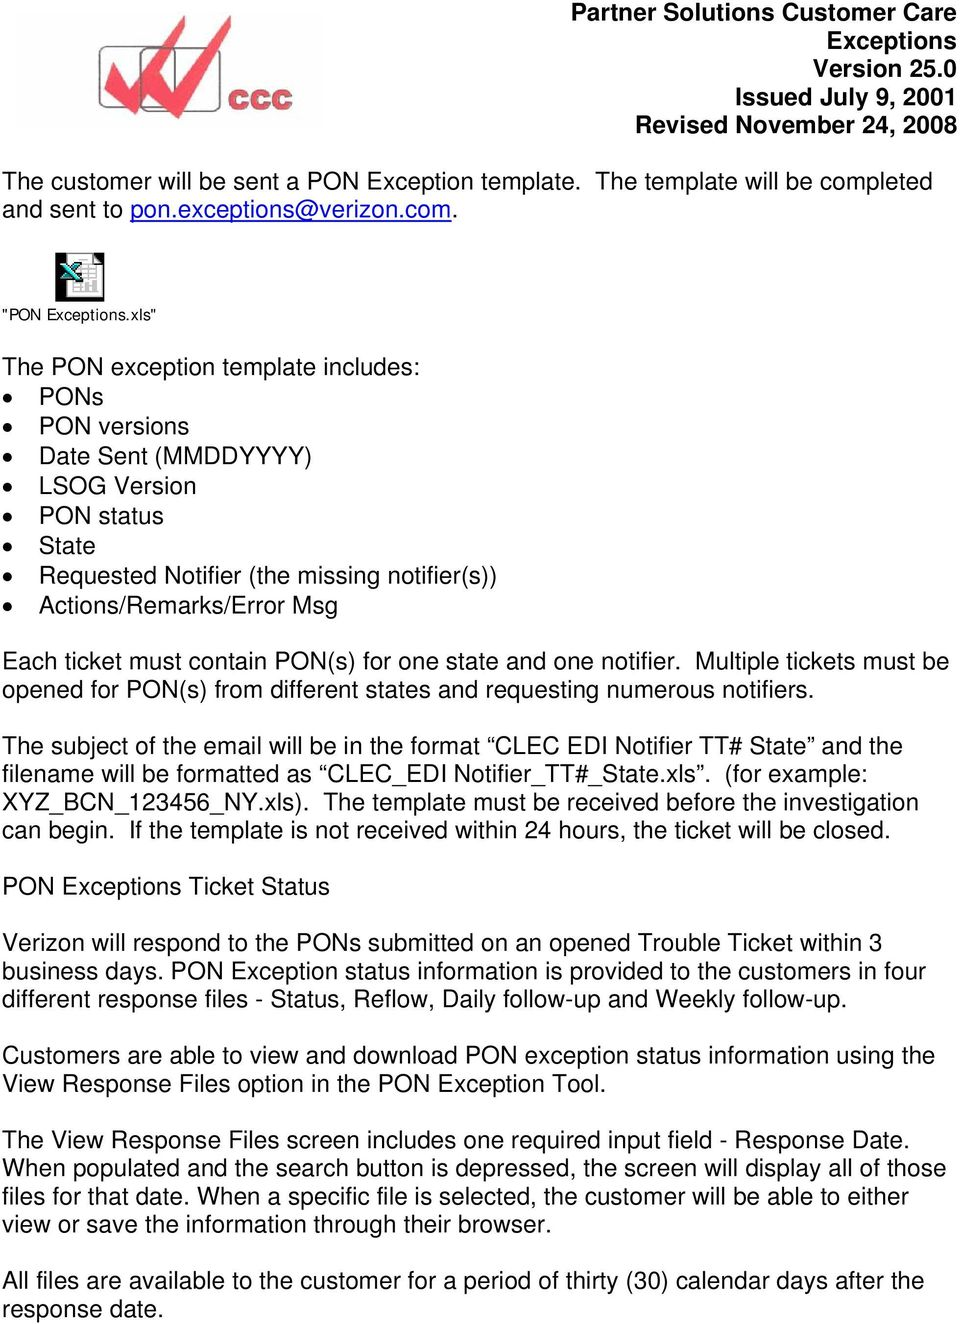 contain PON(s) for one state and one notifier. Multiple tickets must be opened for PON(s) from different states and requesting numerous notifiers.